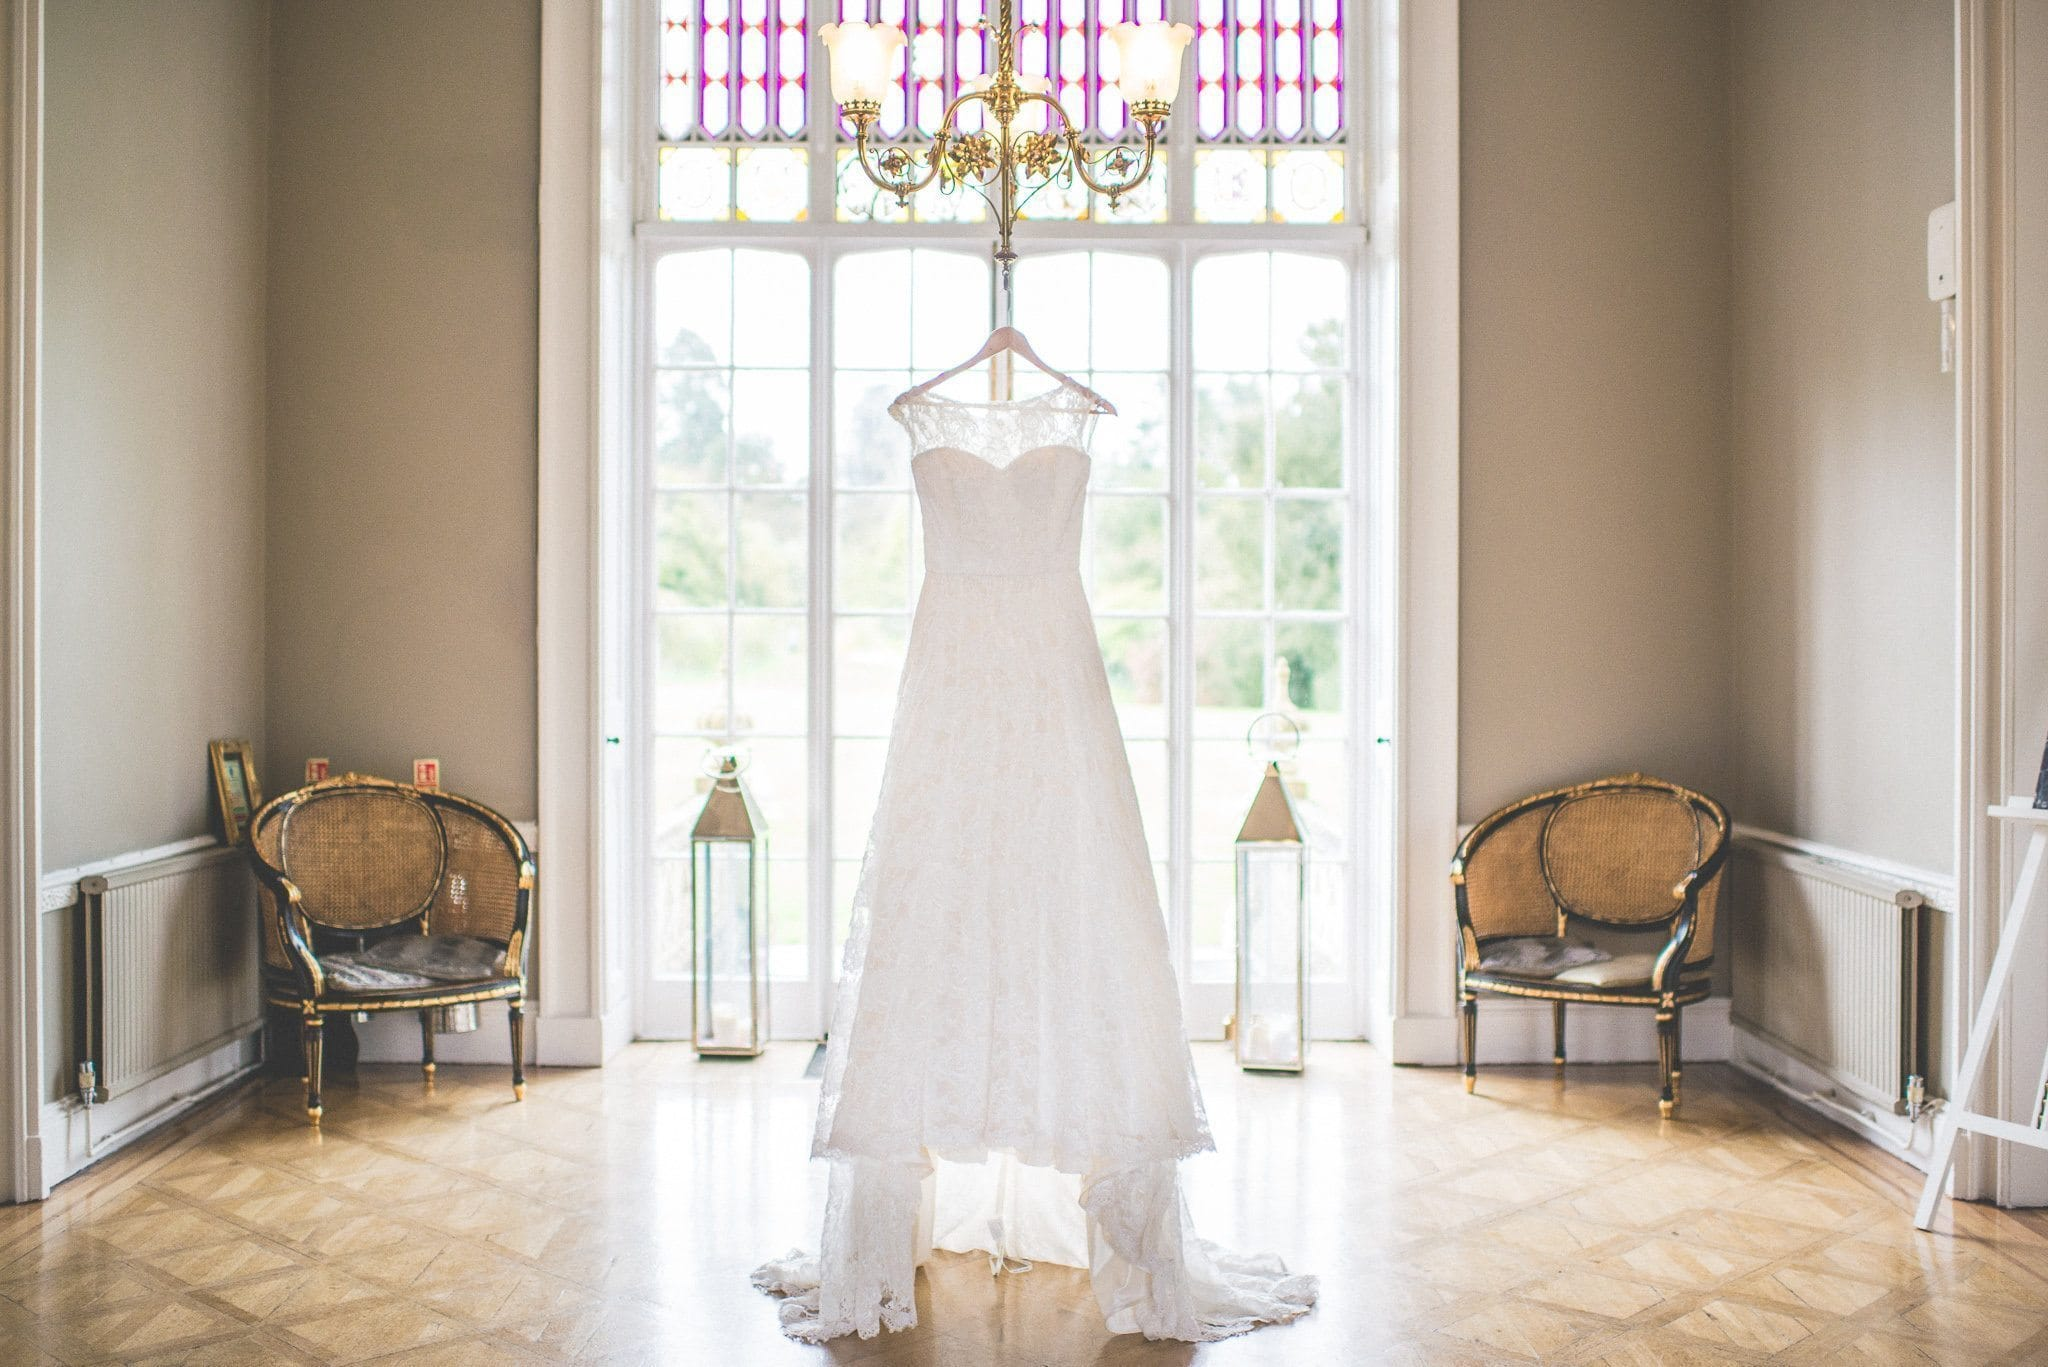 Jasmin's dress hangs from a chandelier on the morning of her emotional Nonsuch Mansion wedding